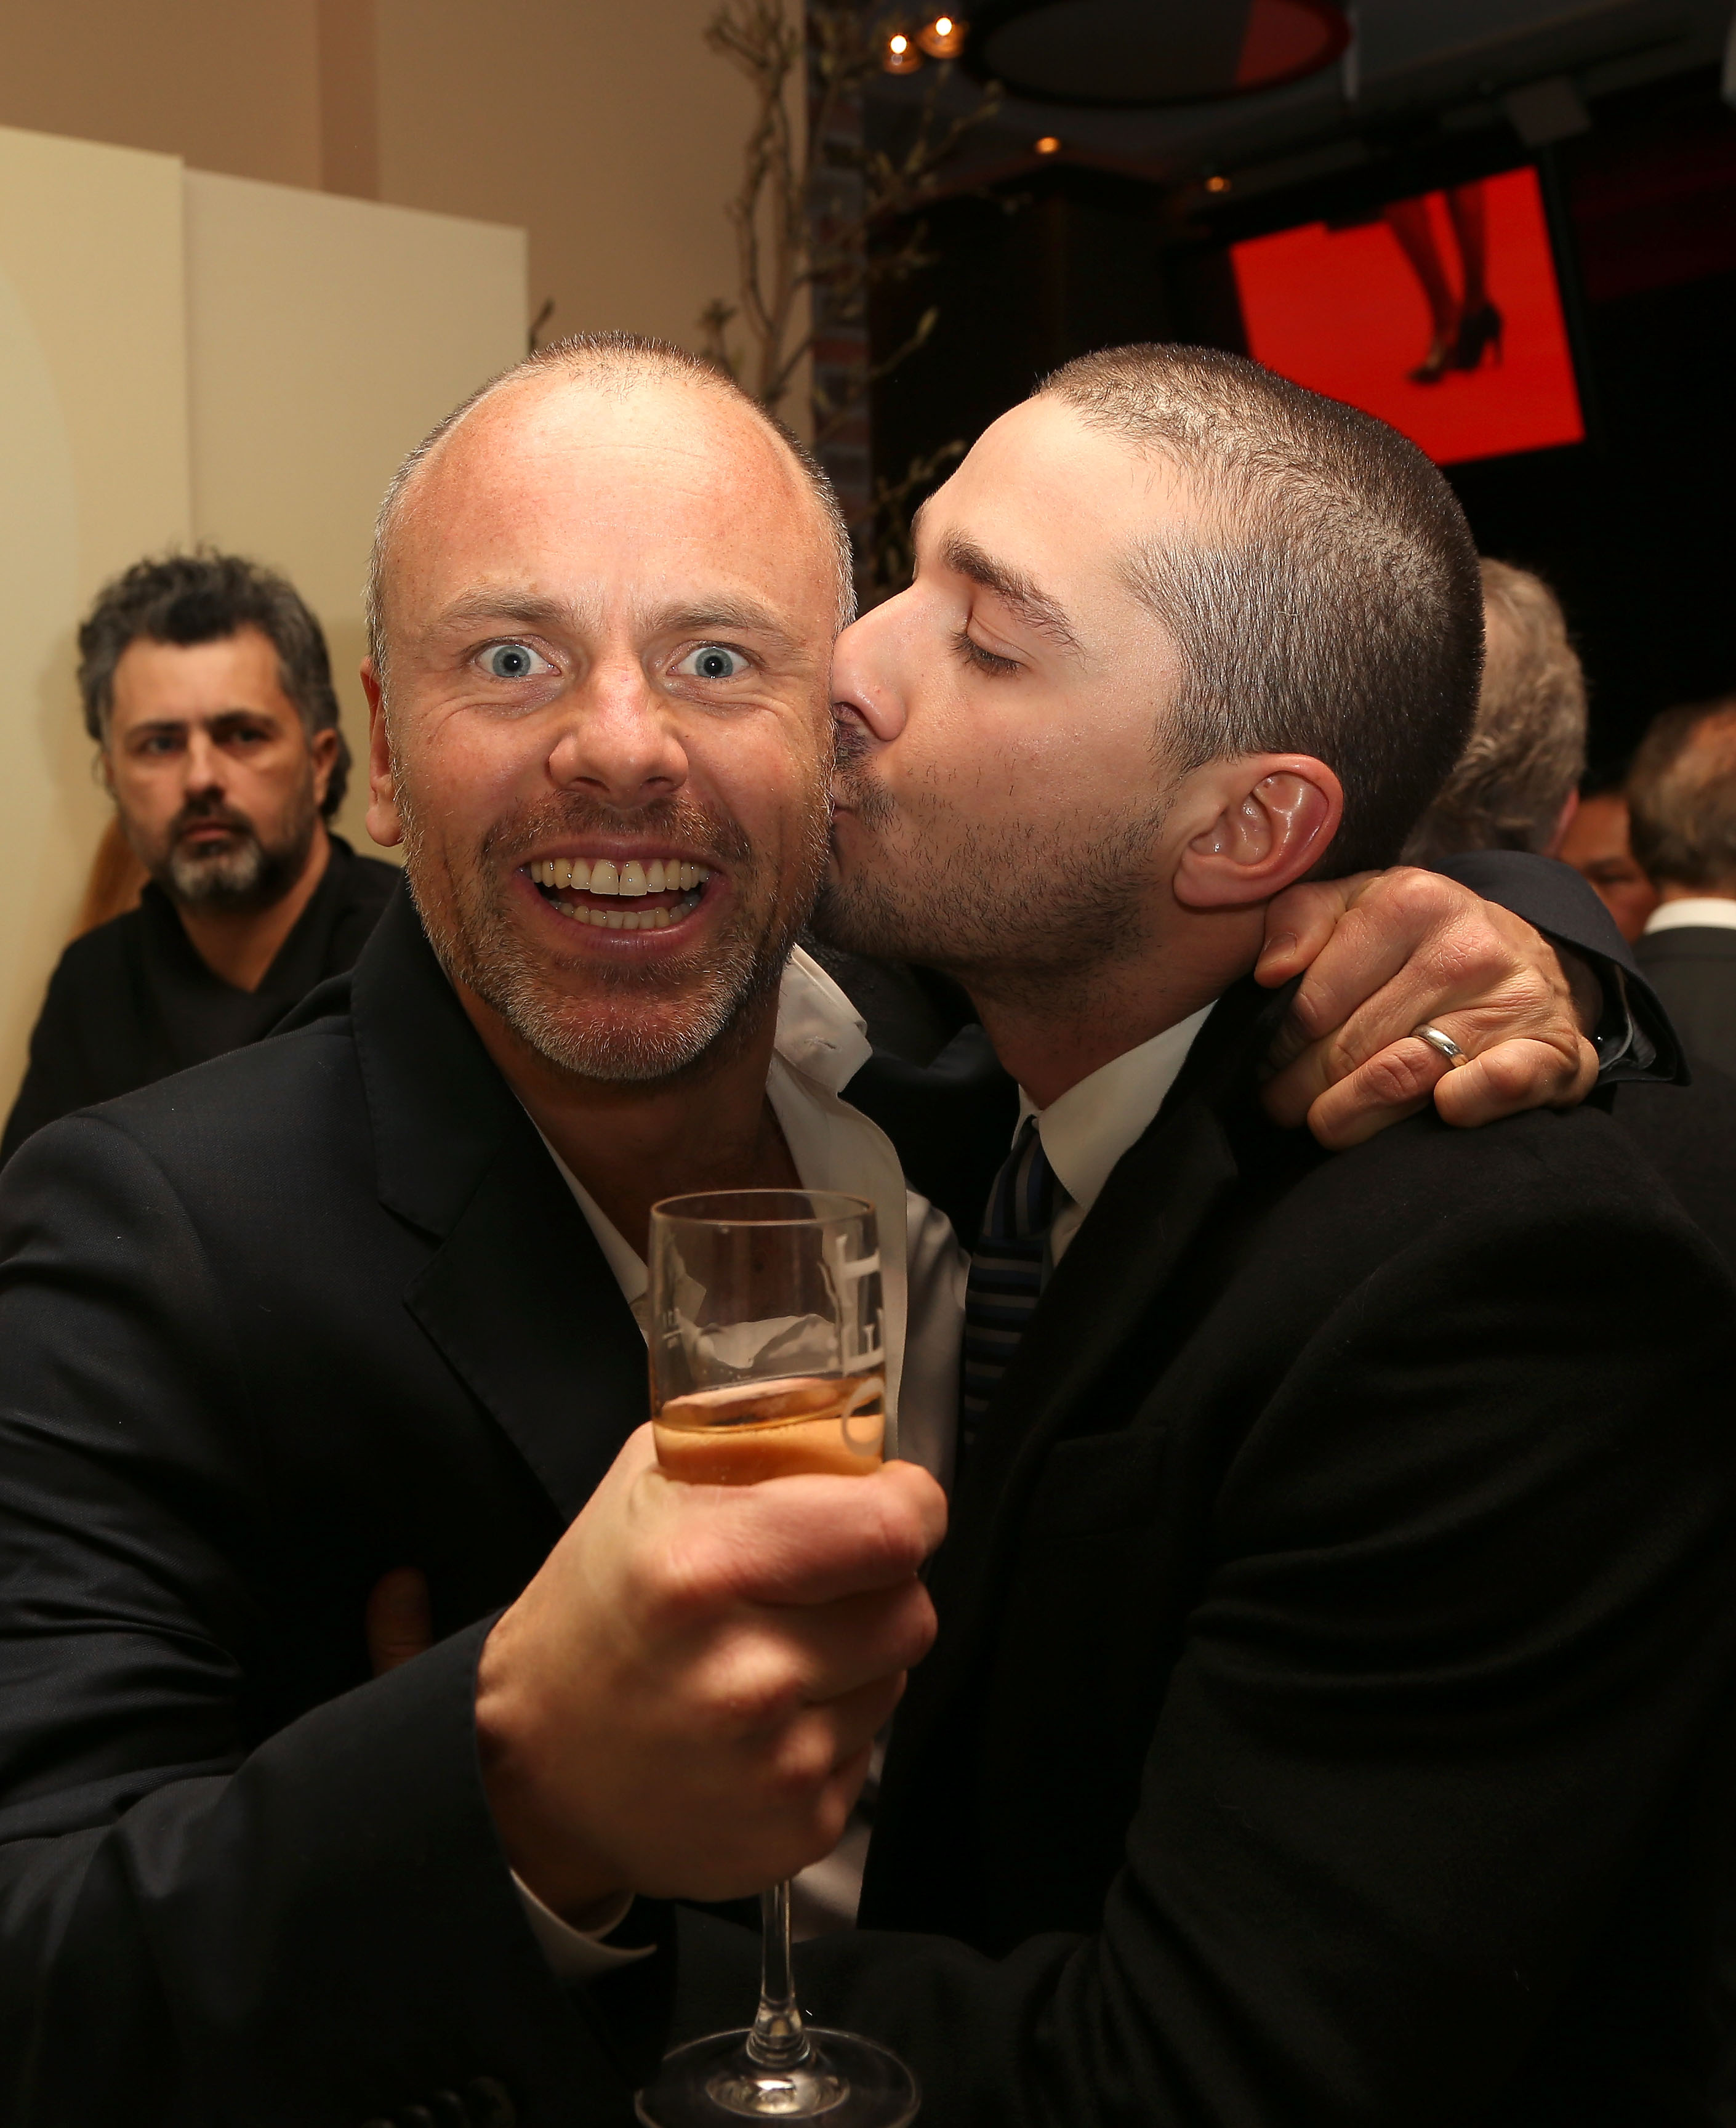 Shia LaBeouf and Fredrik Bond celebrated their The Necessary Death of Charlie Countryman premiere in Berlin on Saturday.